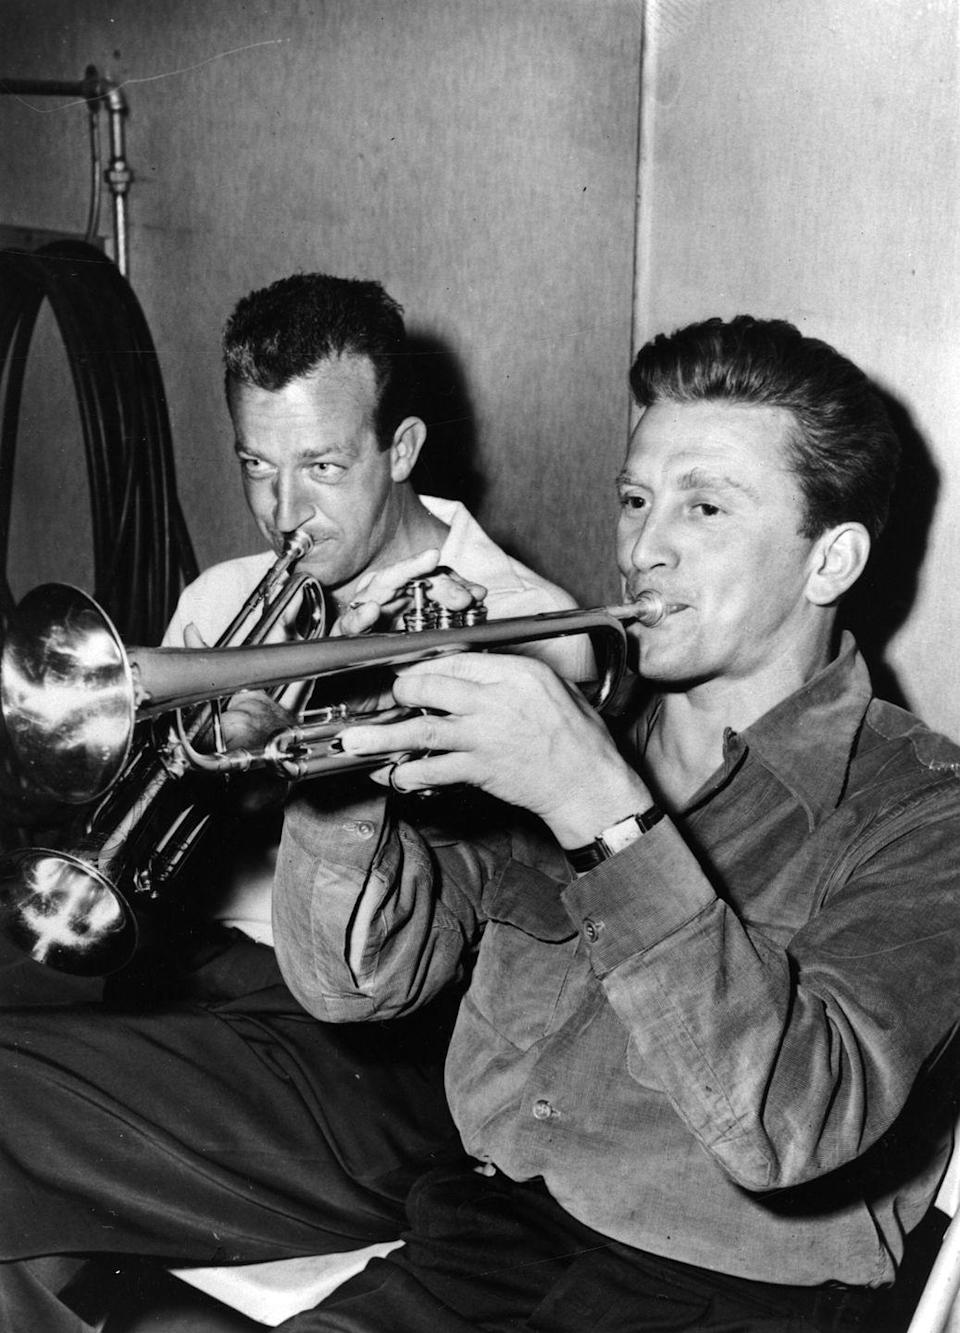 <p>Douglas plays the trumpet with bandleader and trumpeter Harry James.</p>